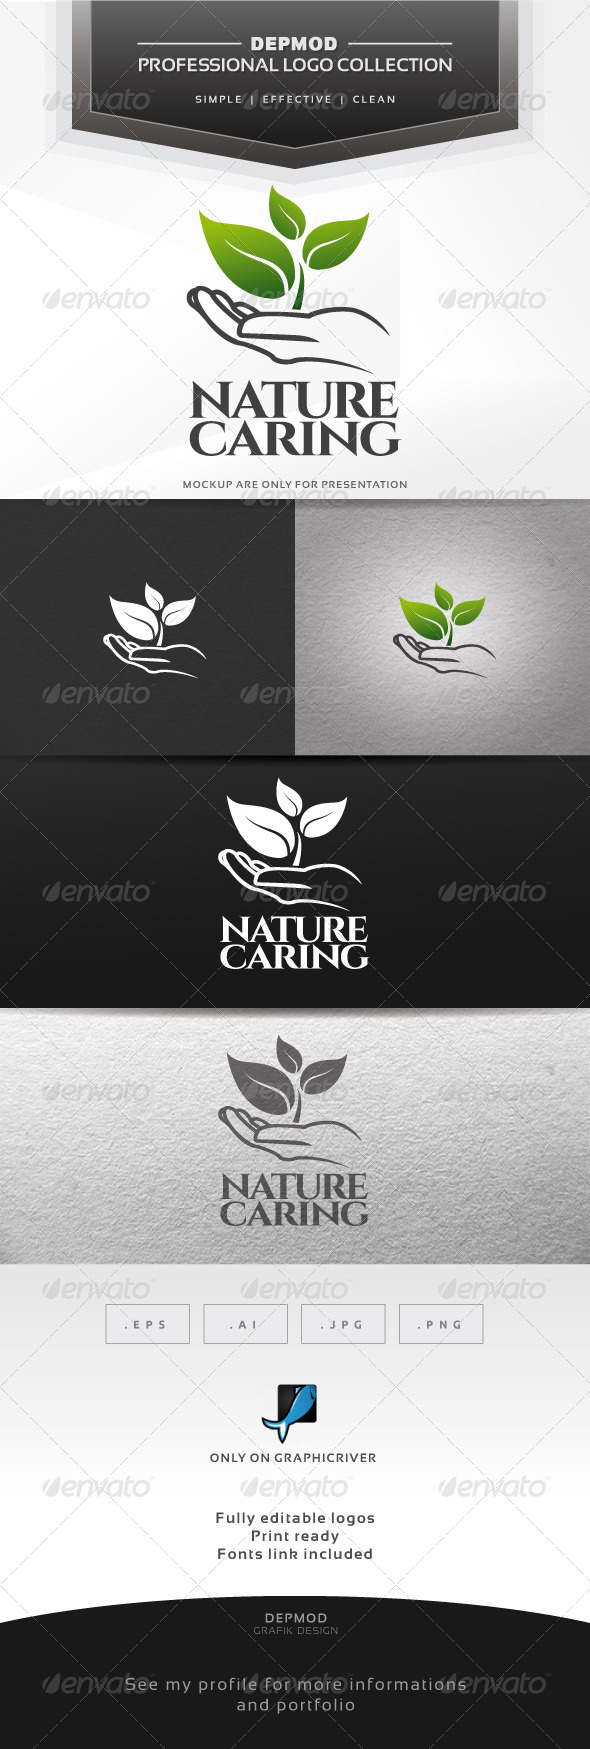 GraphicRiver Nature Caring Logo 6870498